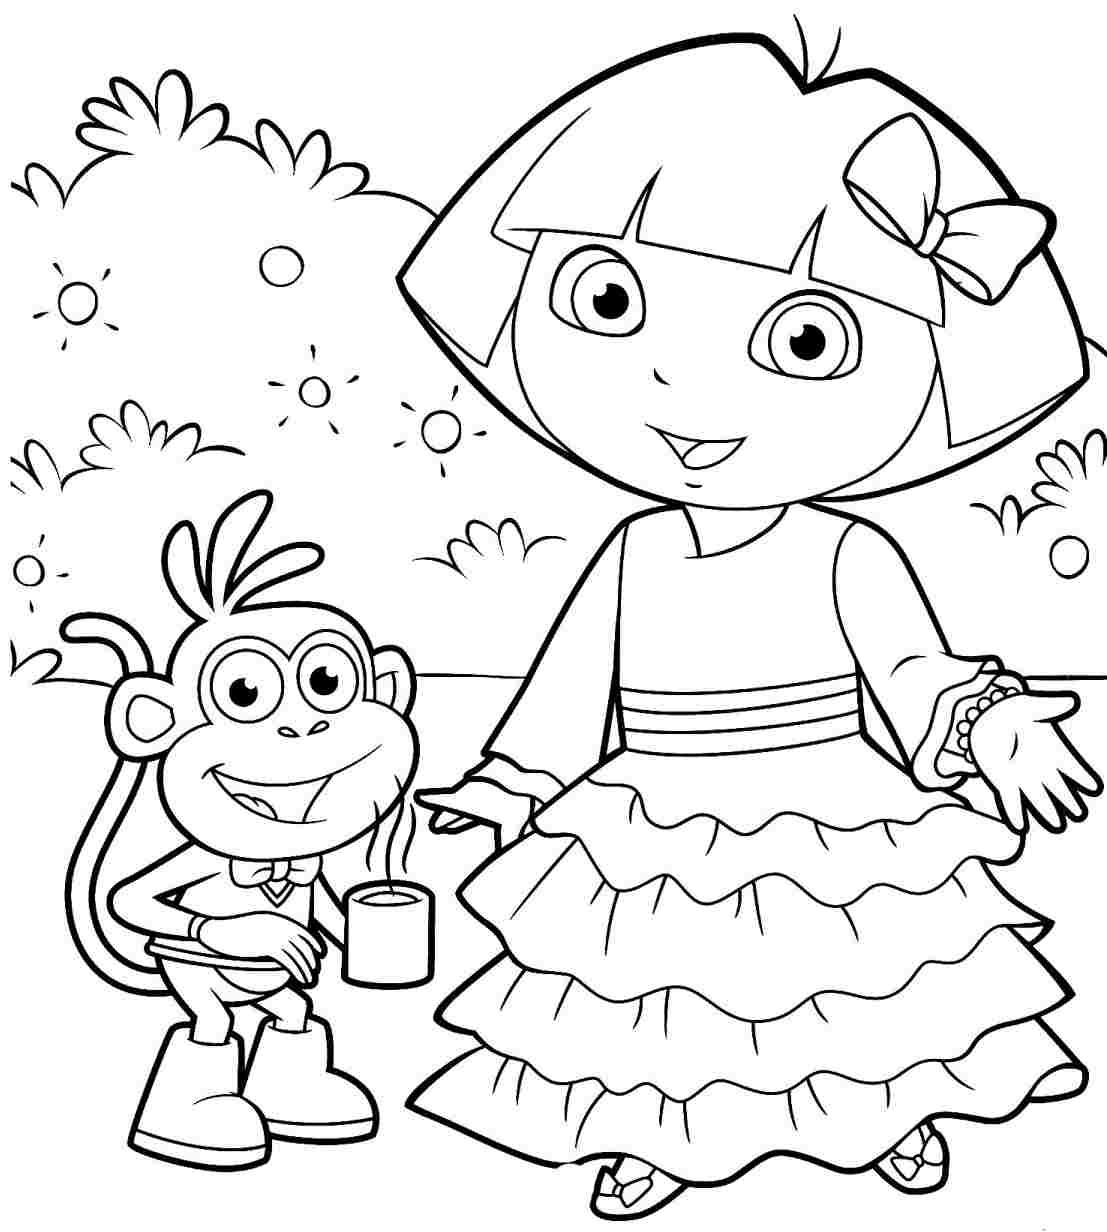 1107x1232 Dora Coloring Pages Elegant Free Printable Dora Coloring Pages